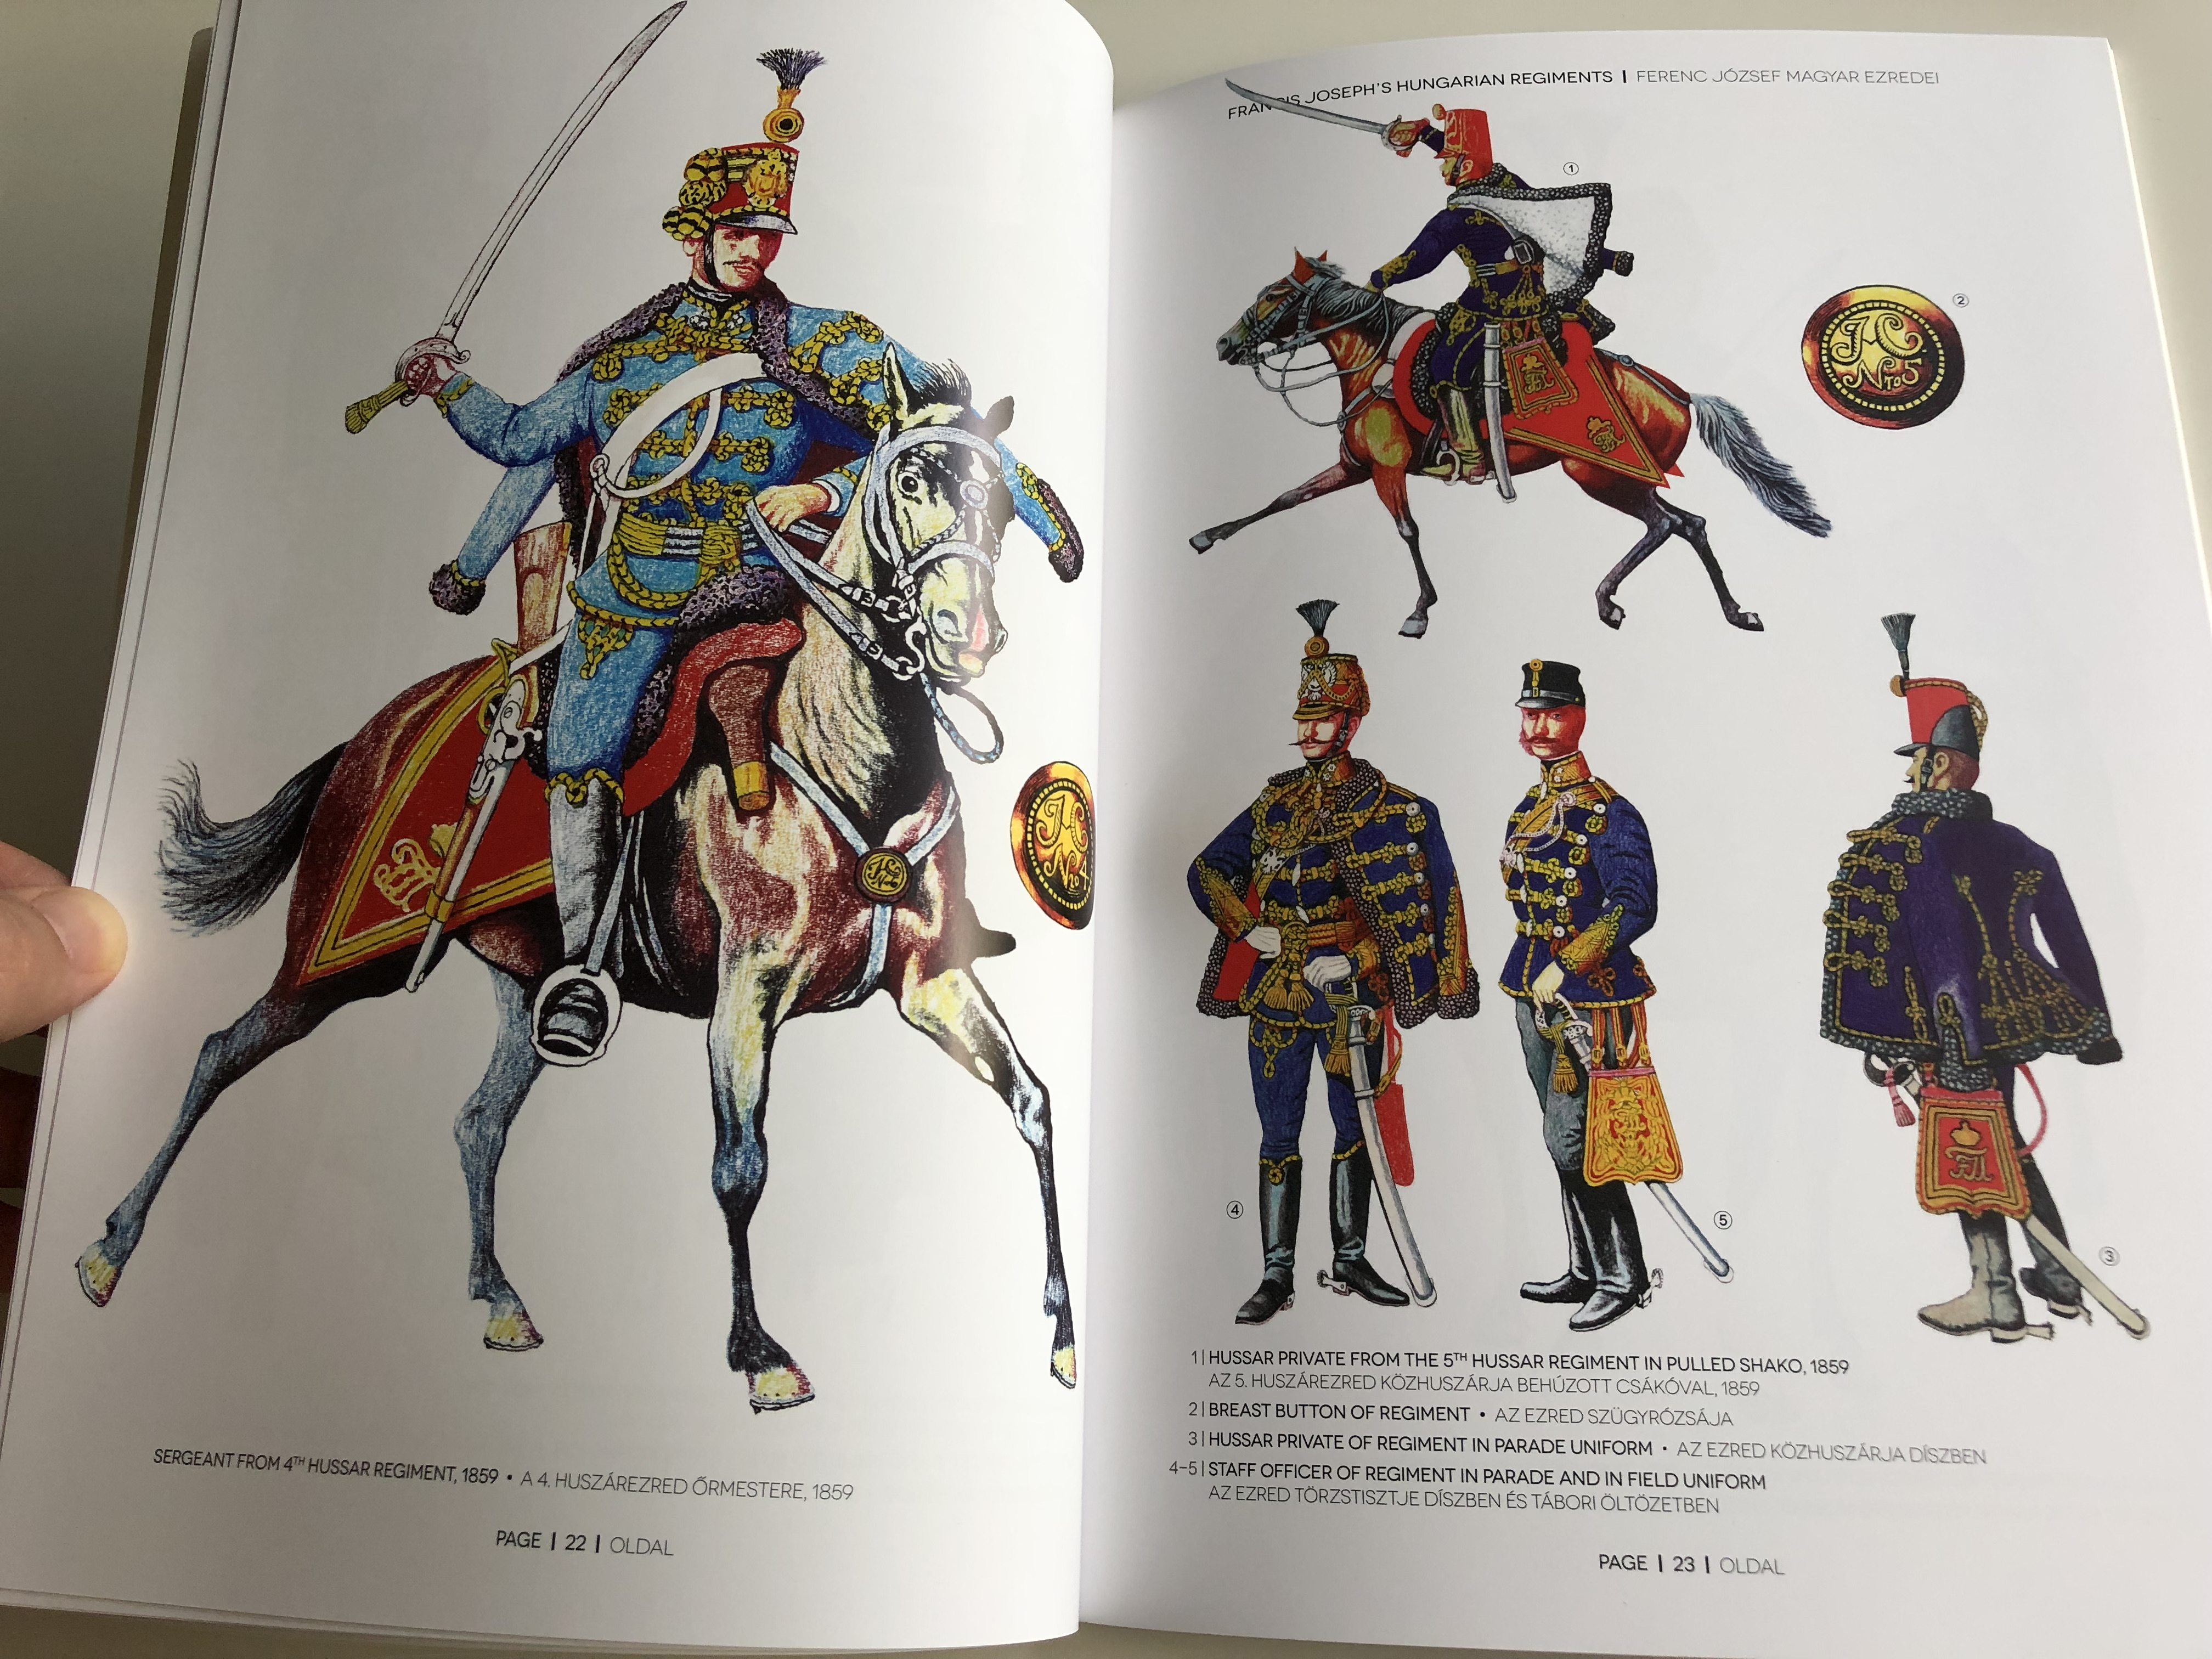 francis-joseph-s-hungarian-regiments-1850-1914-by-gy-z-somogyi-ferenc-j-zsef-magyar-ezredei-1850-1914-a-millenium-in-the-military-egy-ezred-v-hadban-paperback-2015-hm-zr-nyi-6-.jpg